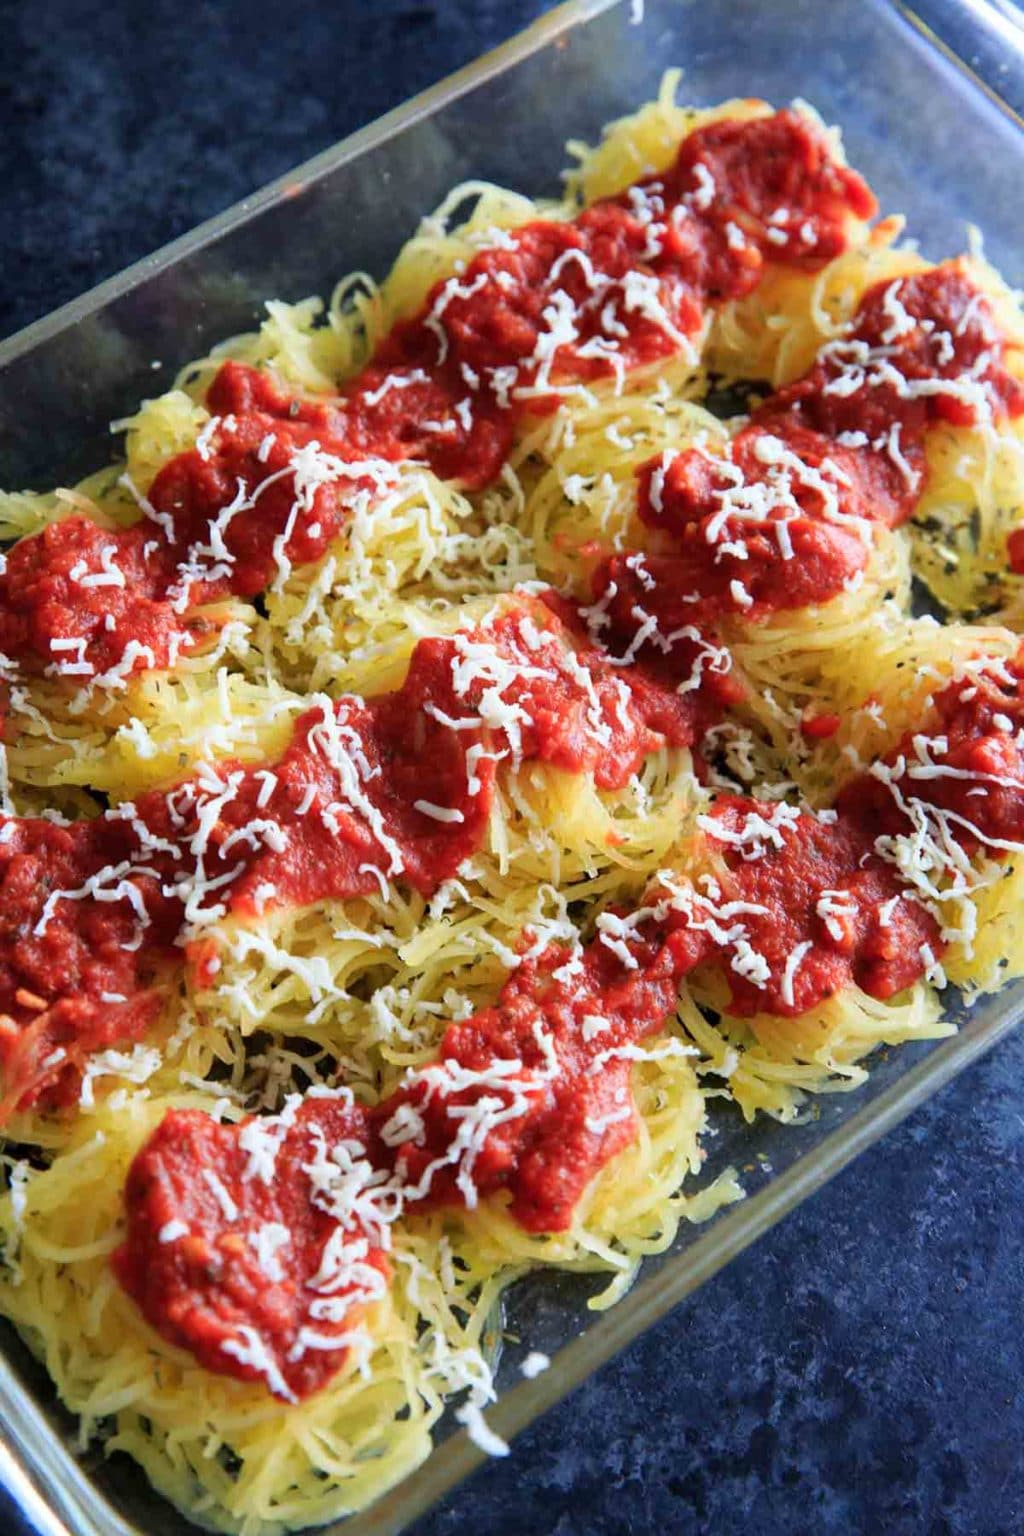 Spaghetti squash with sauce and cheese